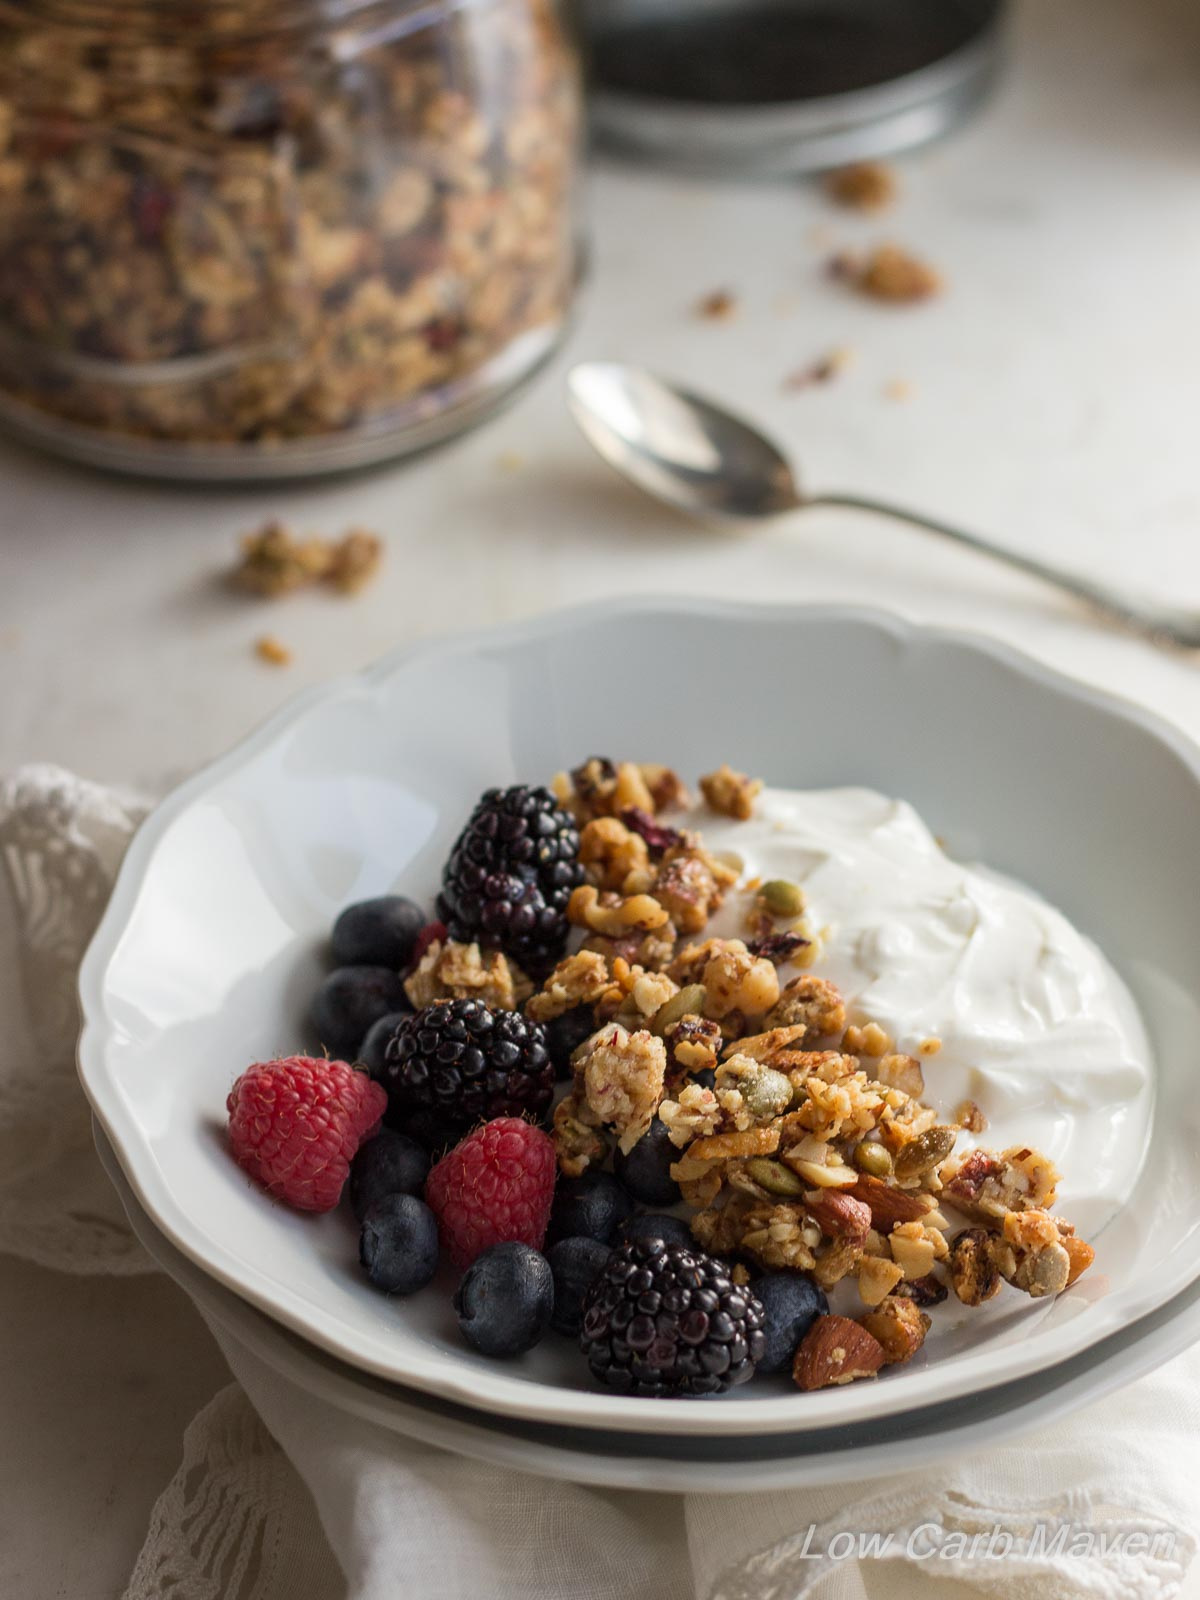 Really Good Low Carb Granola | Low Carb Maven